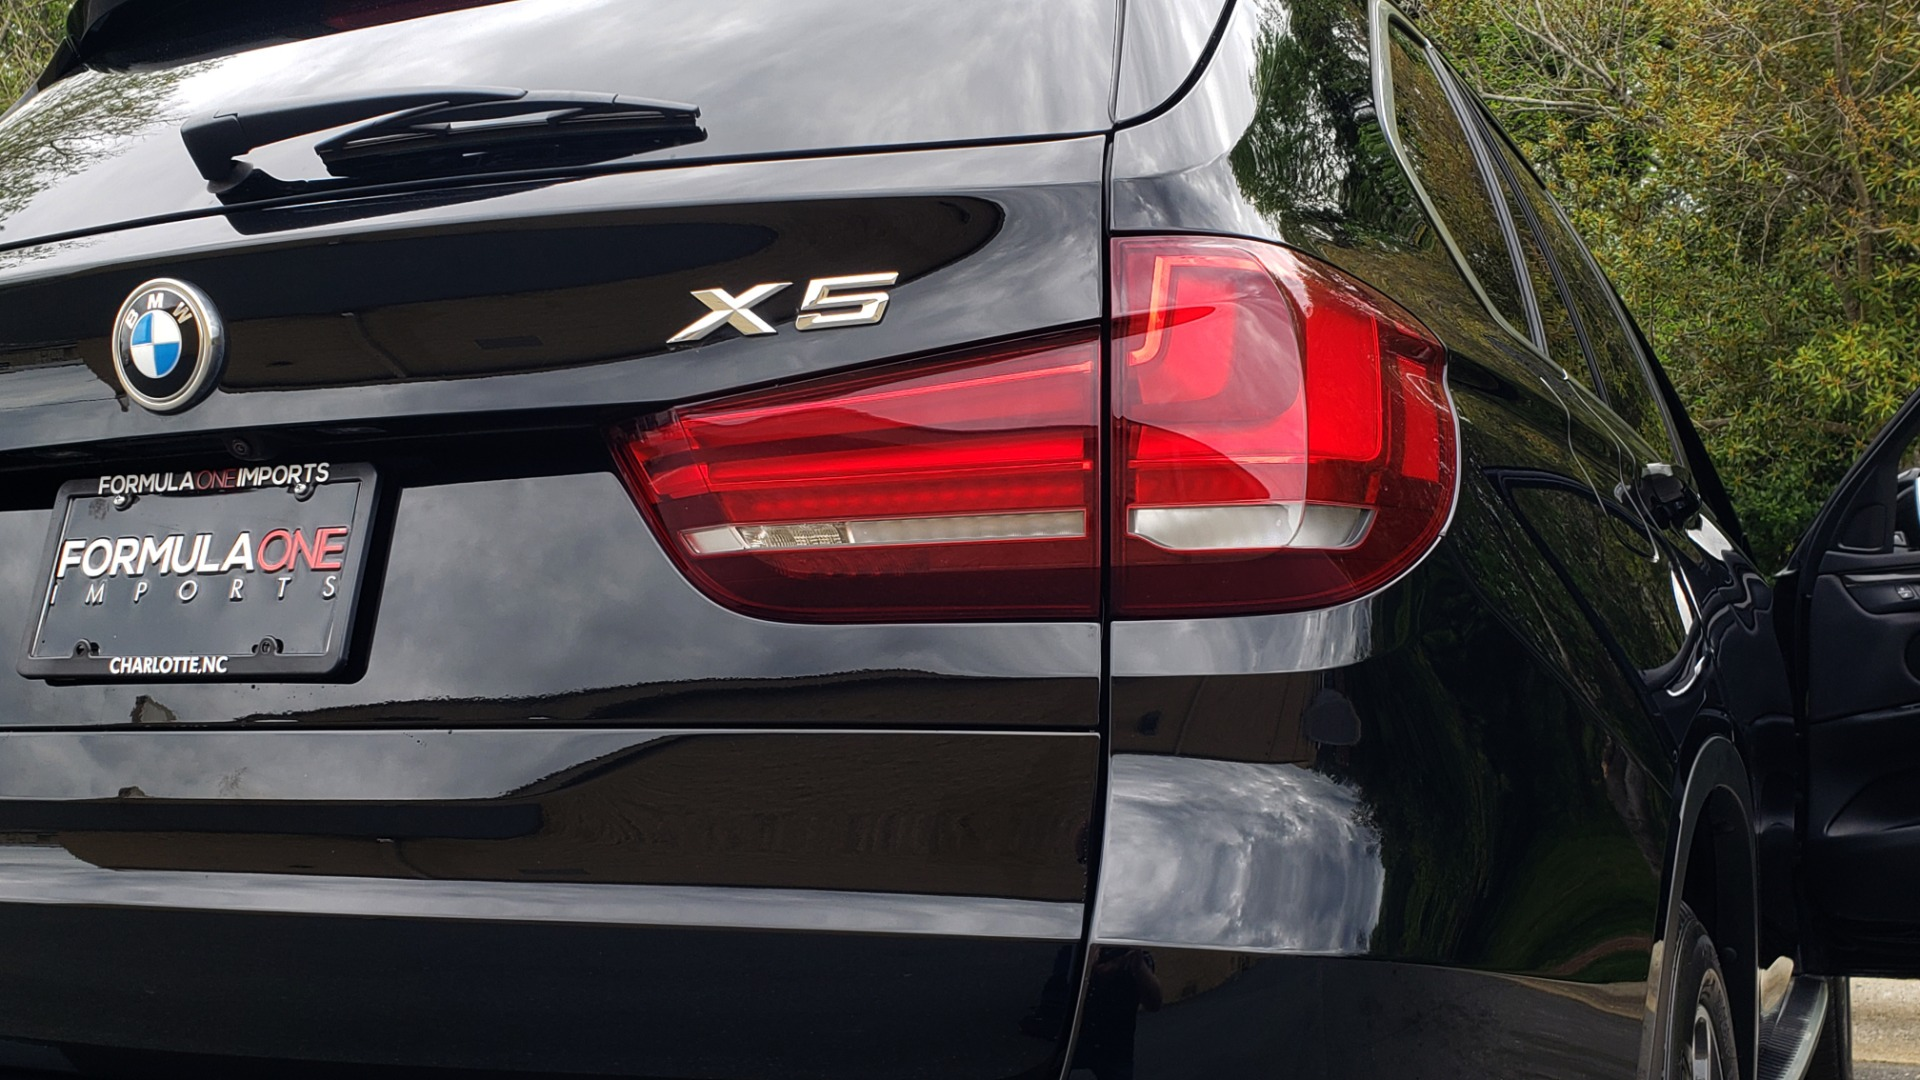 Used 2017 BMW X5 XDRIVE35I / NAV / SUNROOF / REARVIEW / HTD STS for sale Sold at Formula Imports in Charlotte NC 28227 35